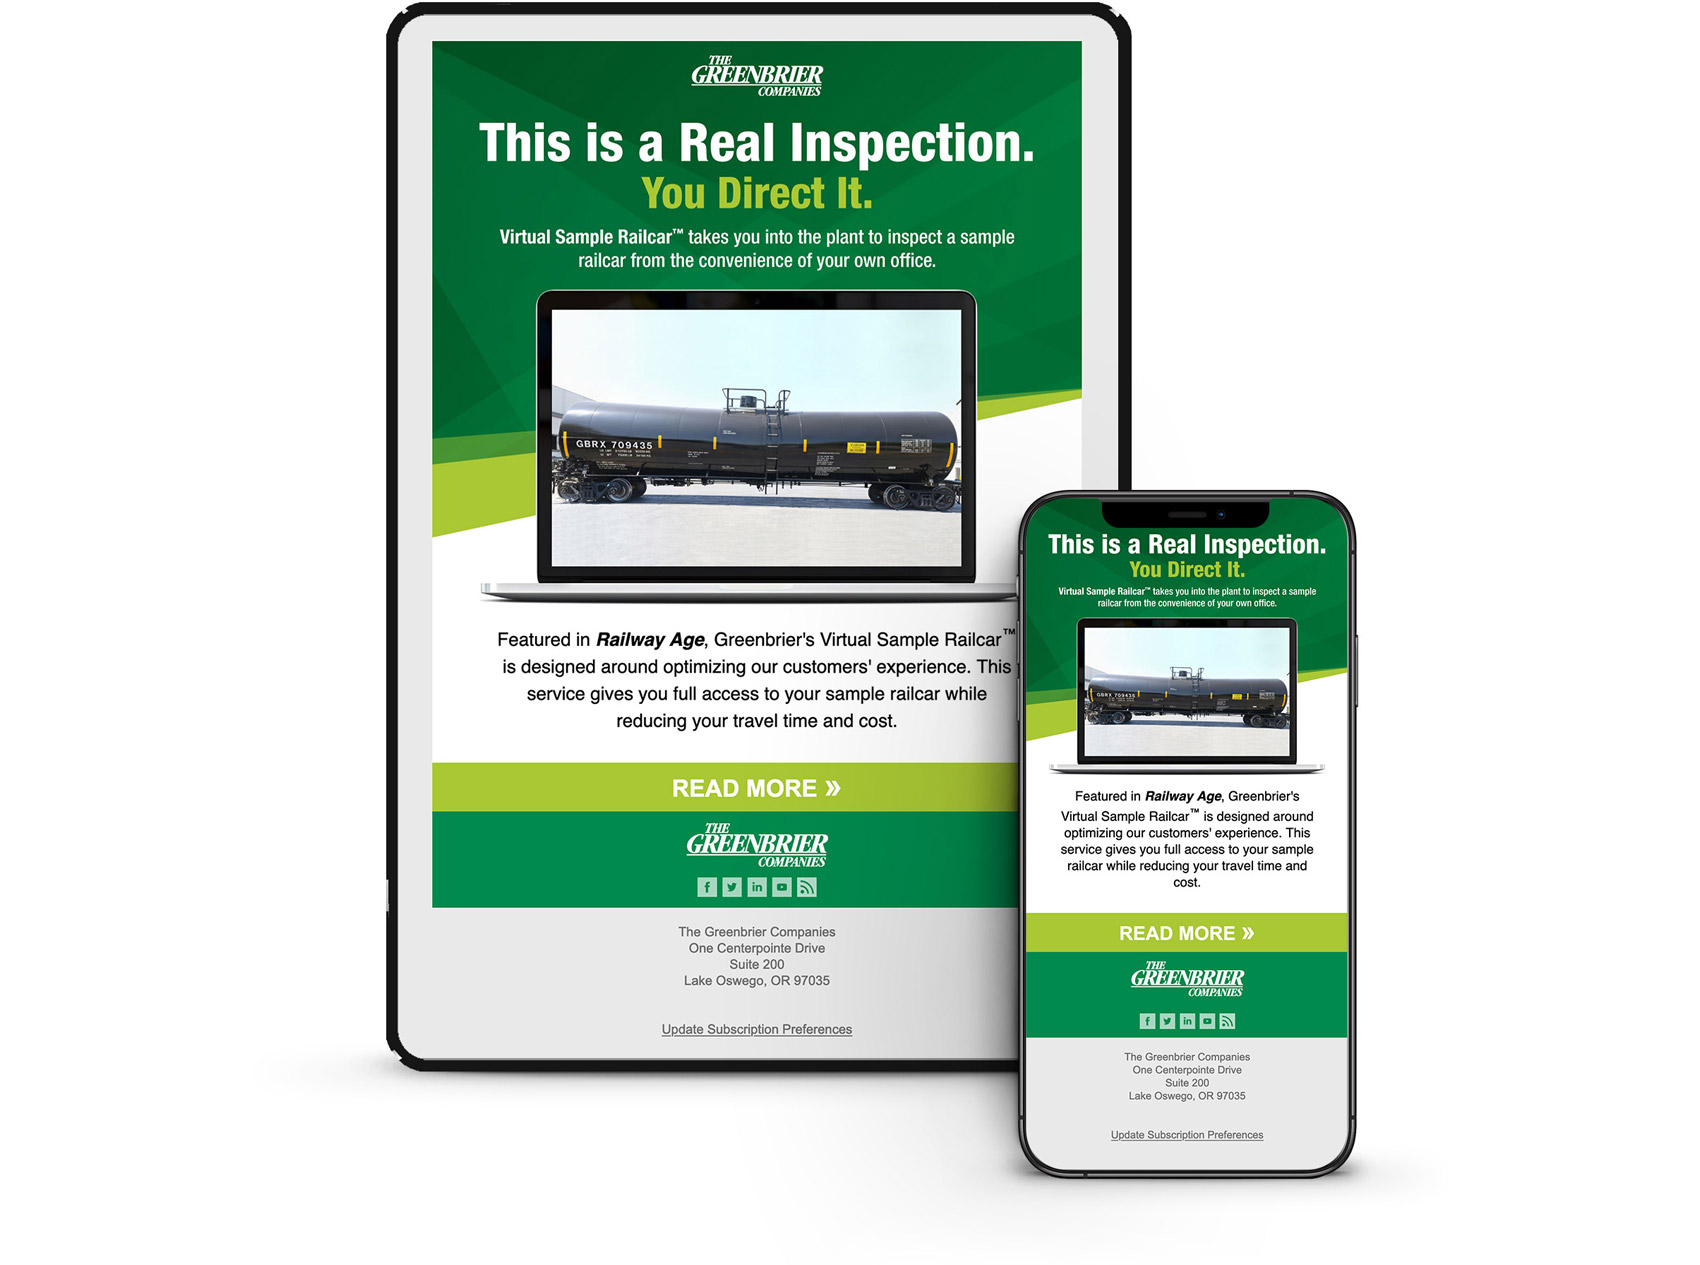 HTML Email Design for The Greenbrier Companies